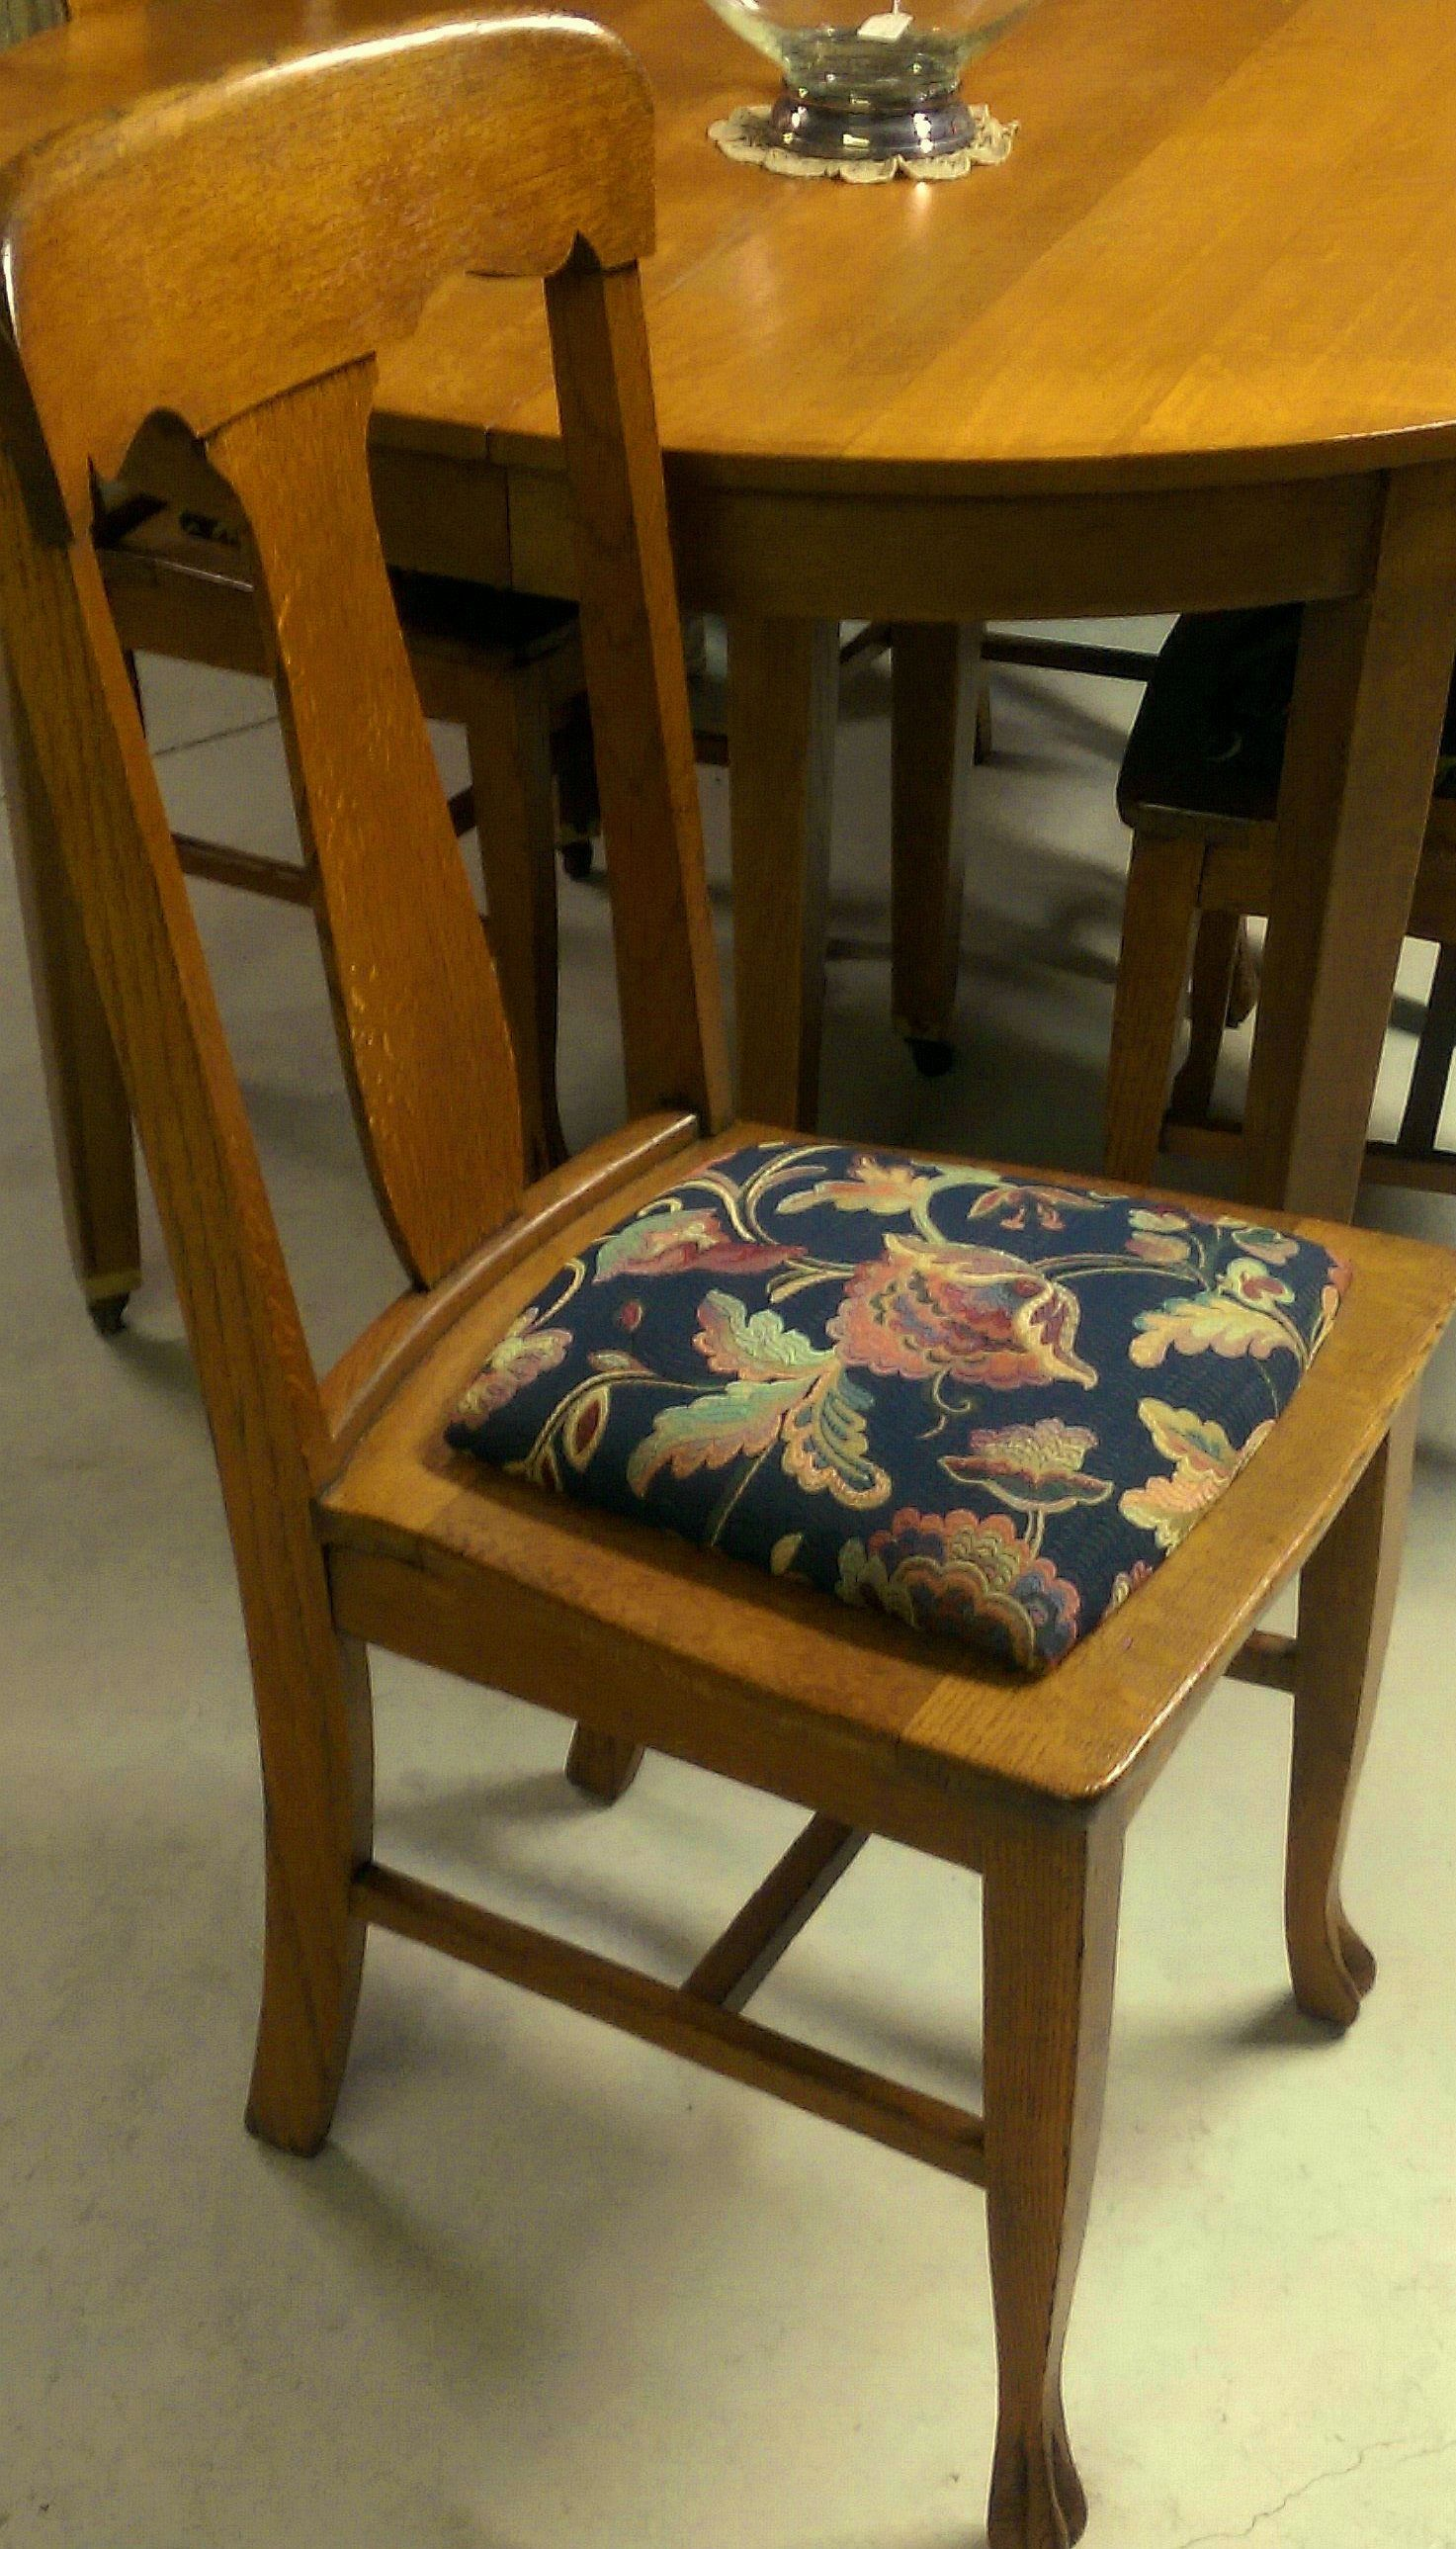 Built In Benches In Almost Anywhere Of A Home: 100+y/o Set Of 4 T-Back Solid Quartersawn Tiger Oak Chairs W/ Almost New Reupholstery Job